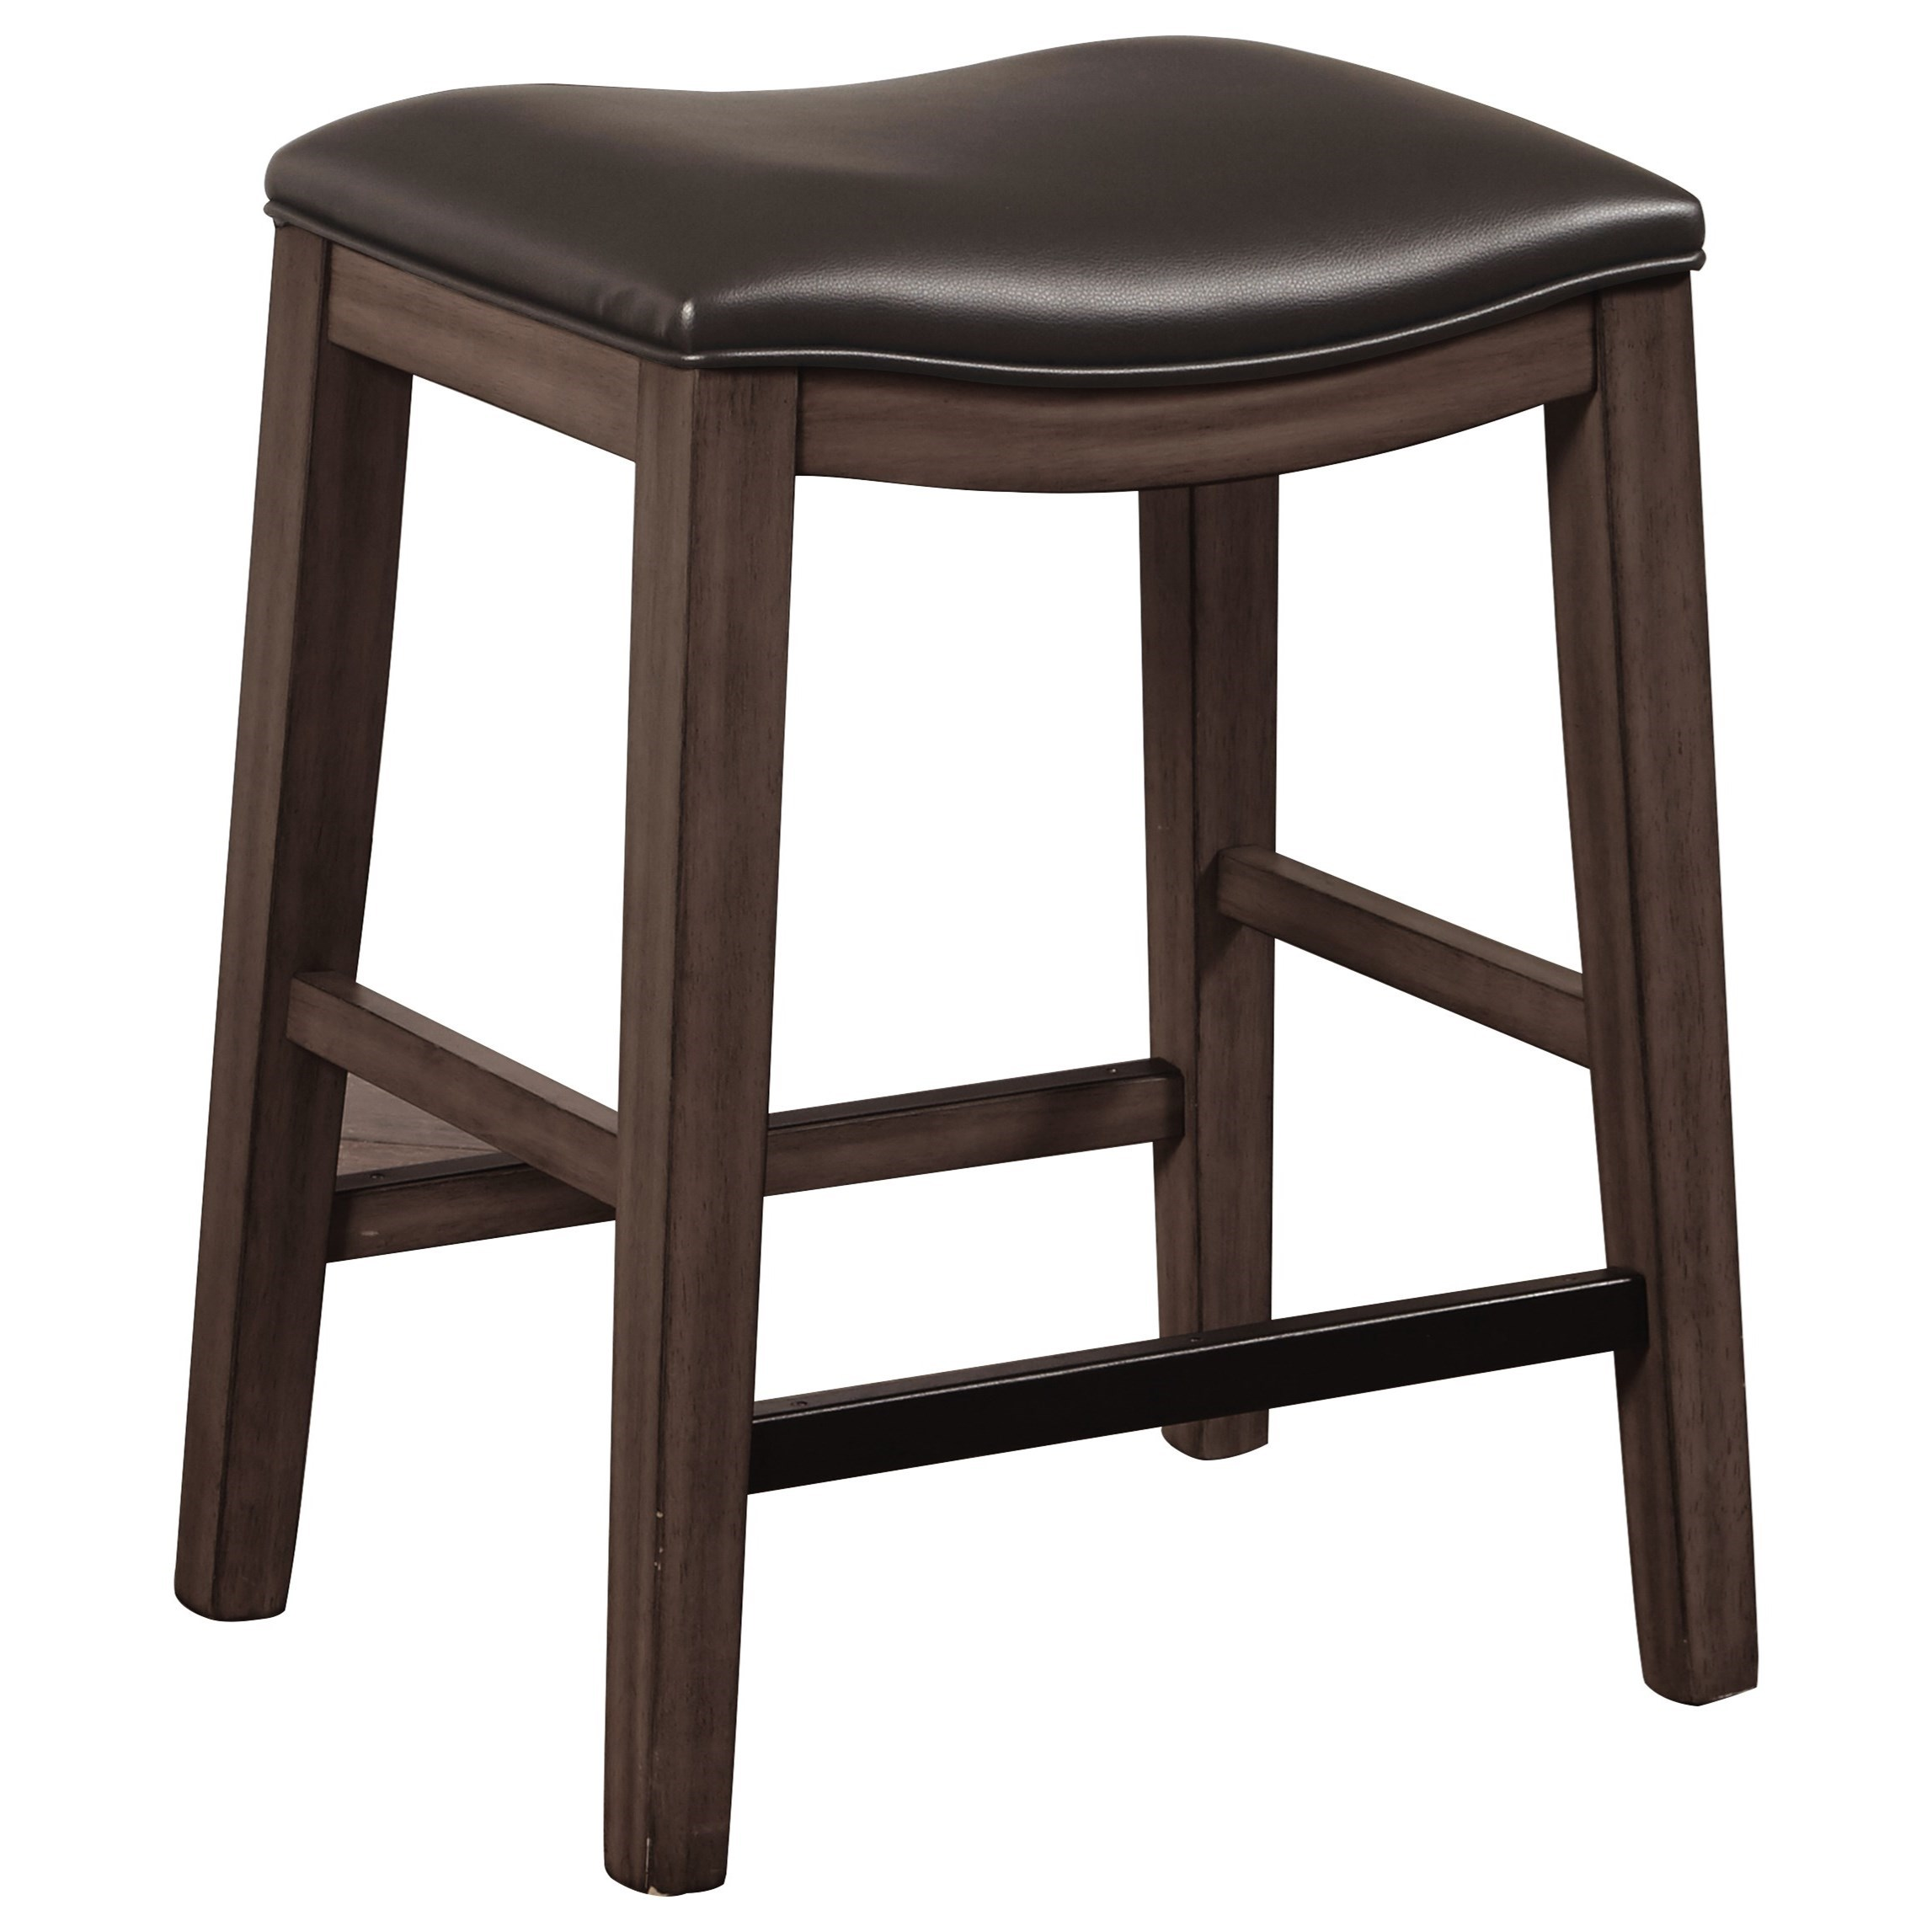 Kent Kent  Backless Stool by Samuel Lawrence at Morris Home